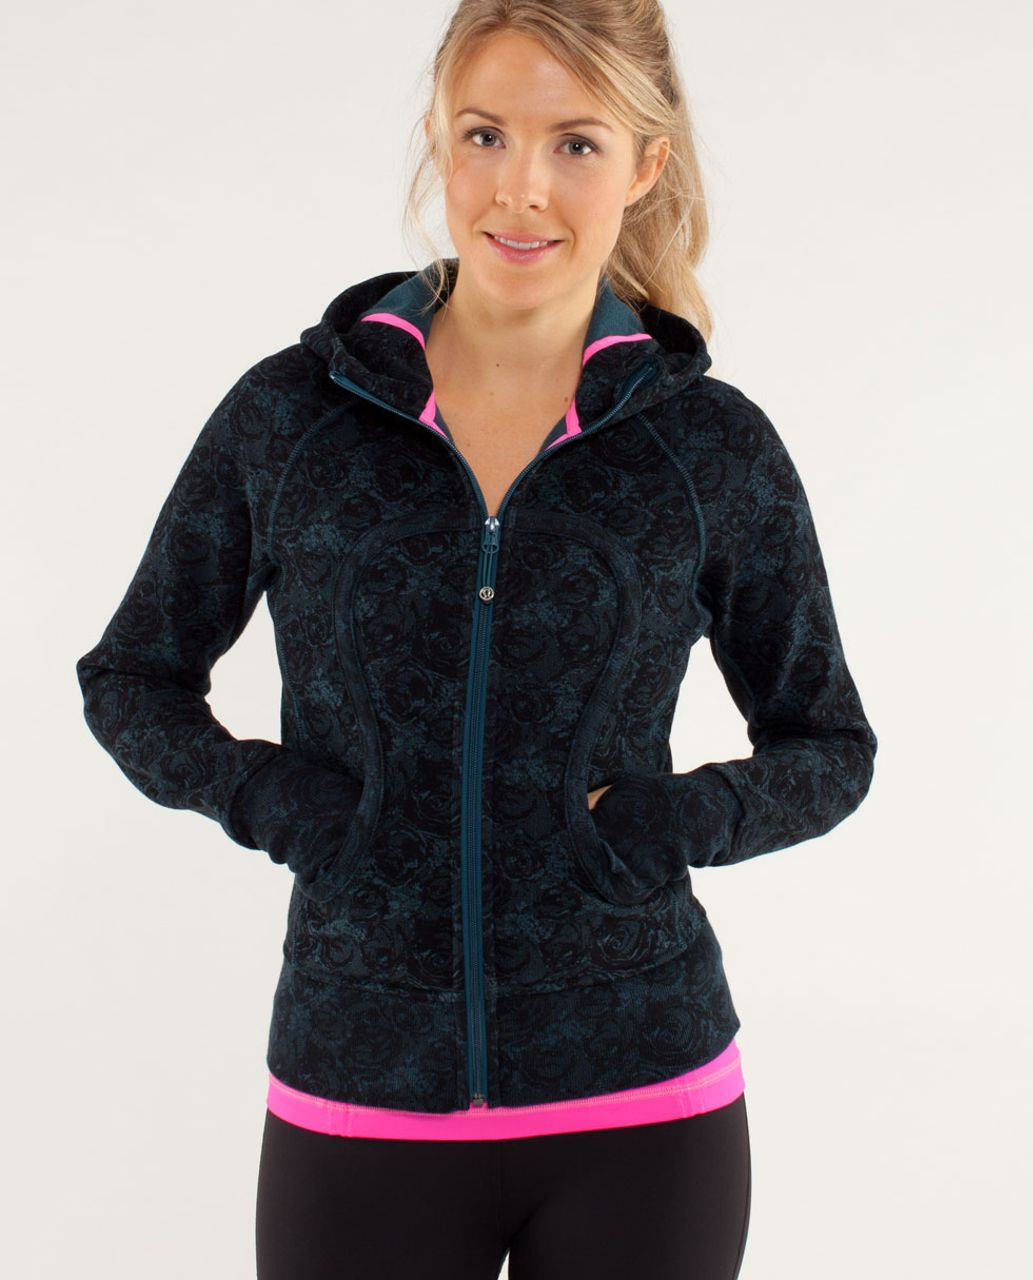 Lululemon Scuba Hoodie *Stretch - Rose Herringbone Printed Alberta Lake Black